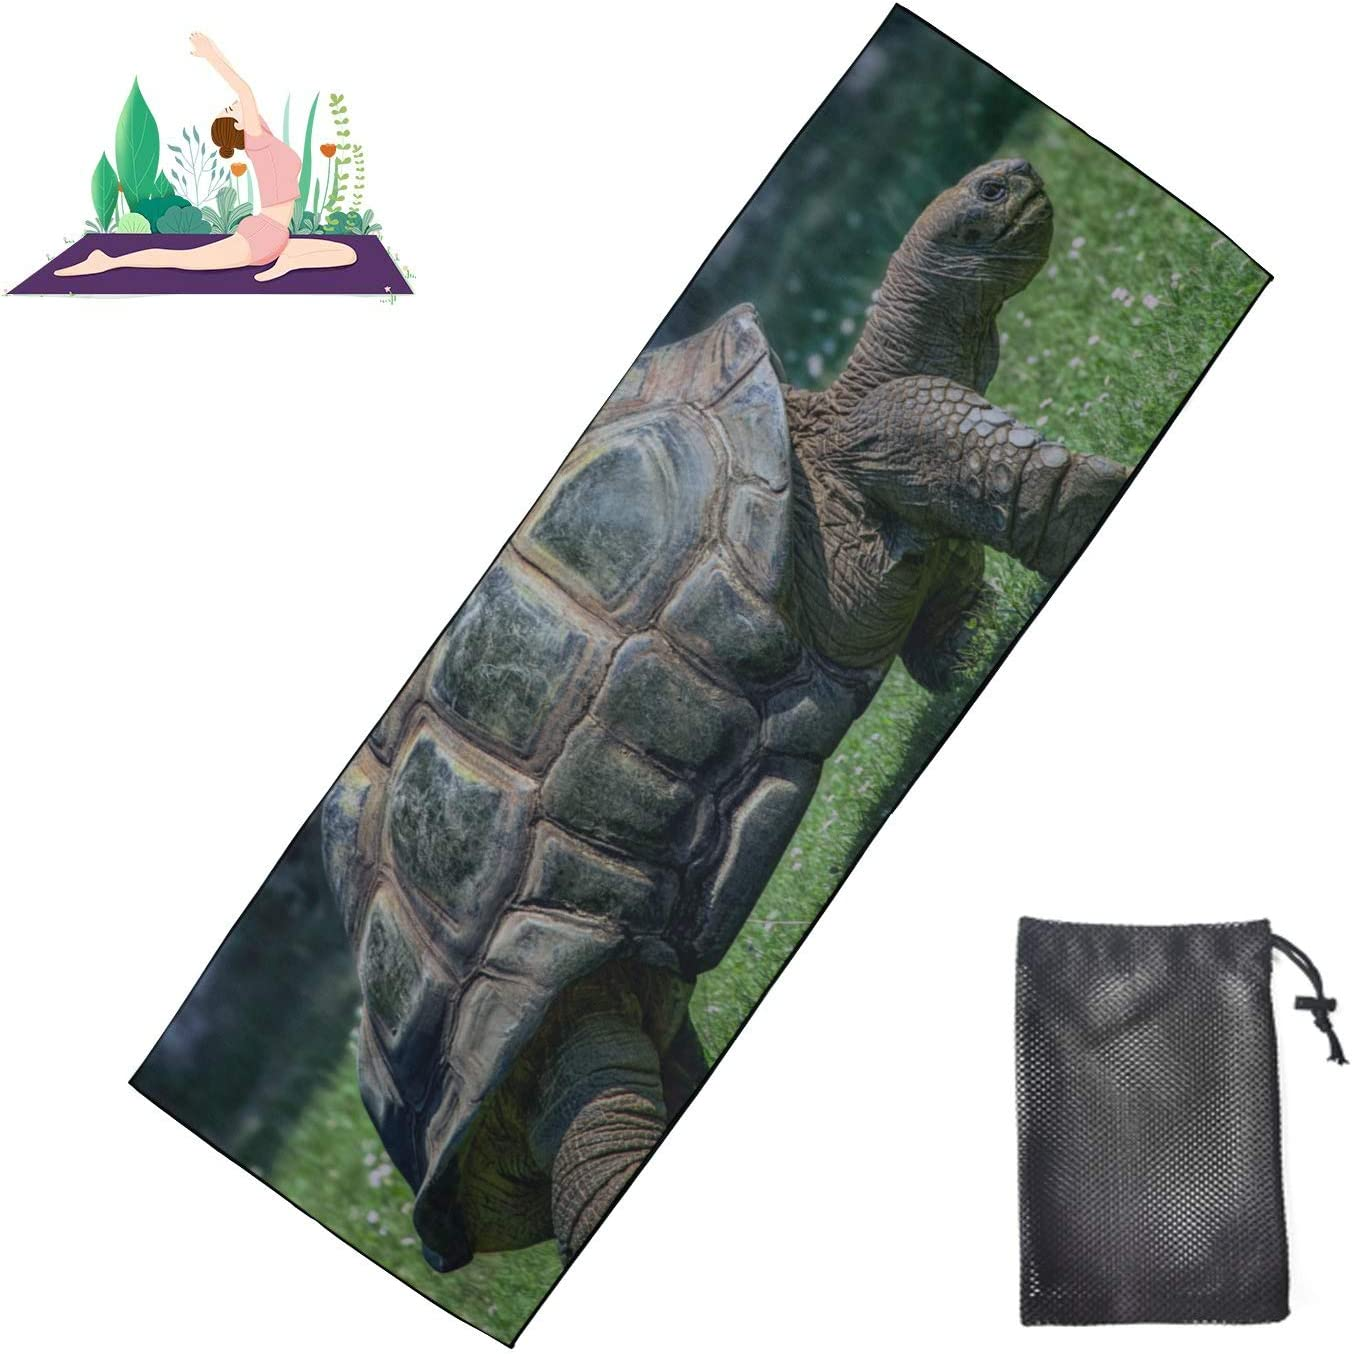 Huqalh Gym Yoga Max 47% OFF Mat Giant Turtles Mic Max 70% OFF Hot Towel Land On